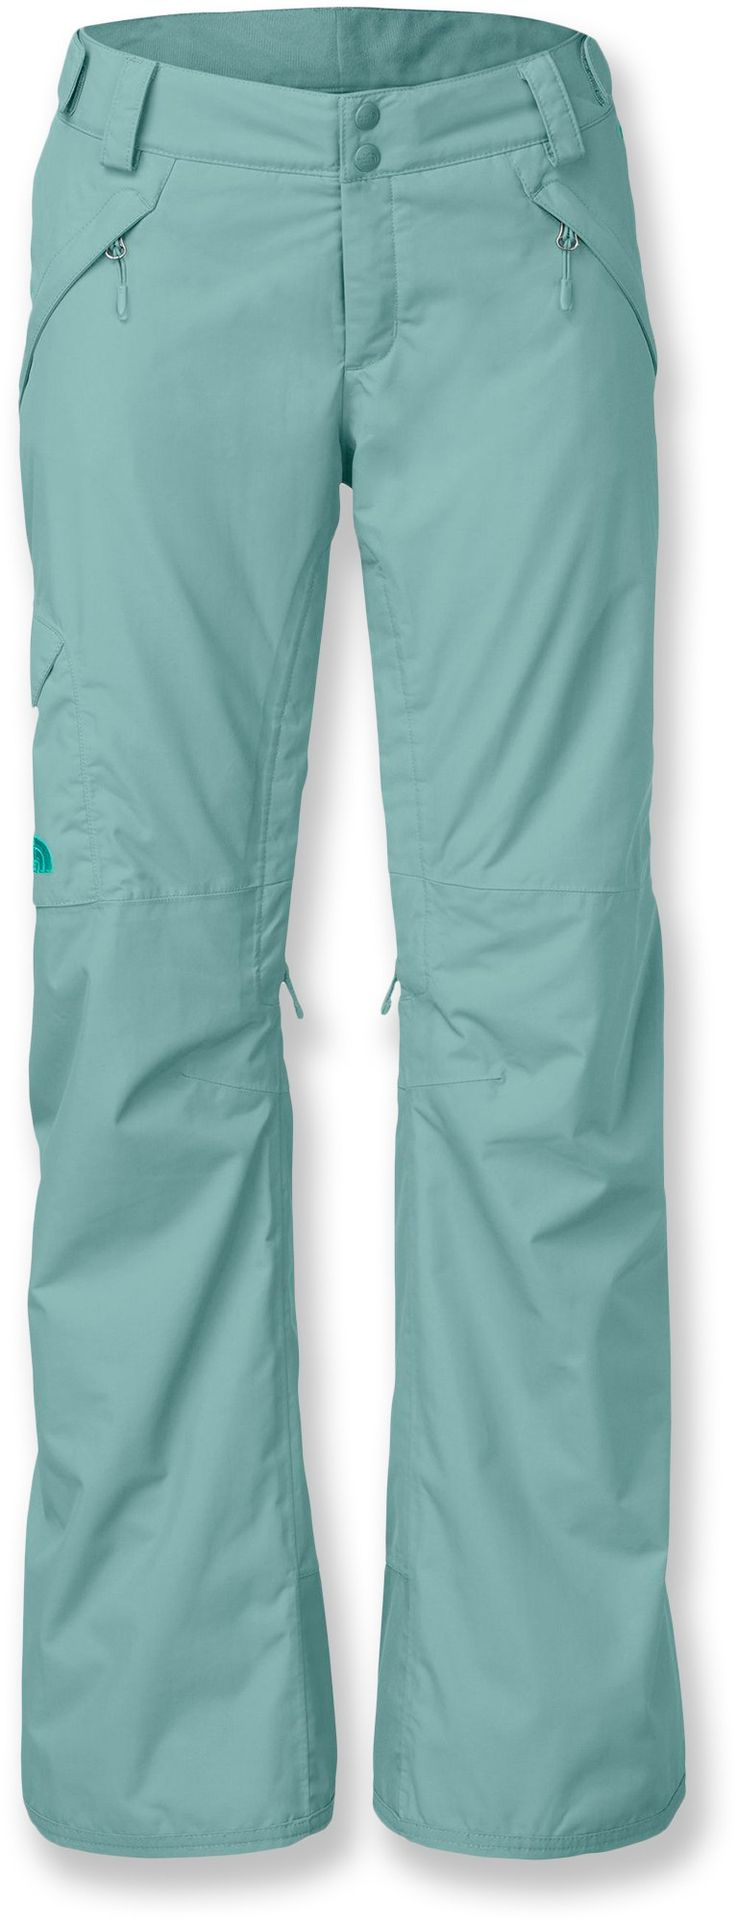 The North Face Freedom LRBC Insulated Pants - Women's - Free Shipping at REI.com